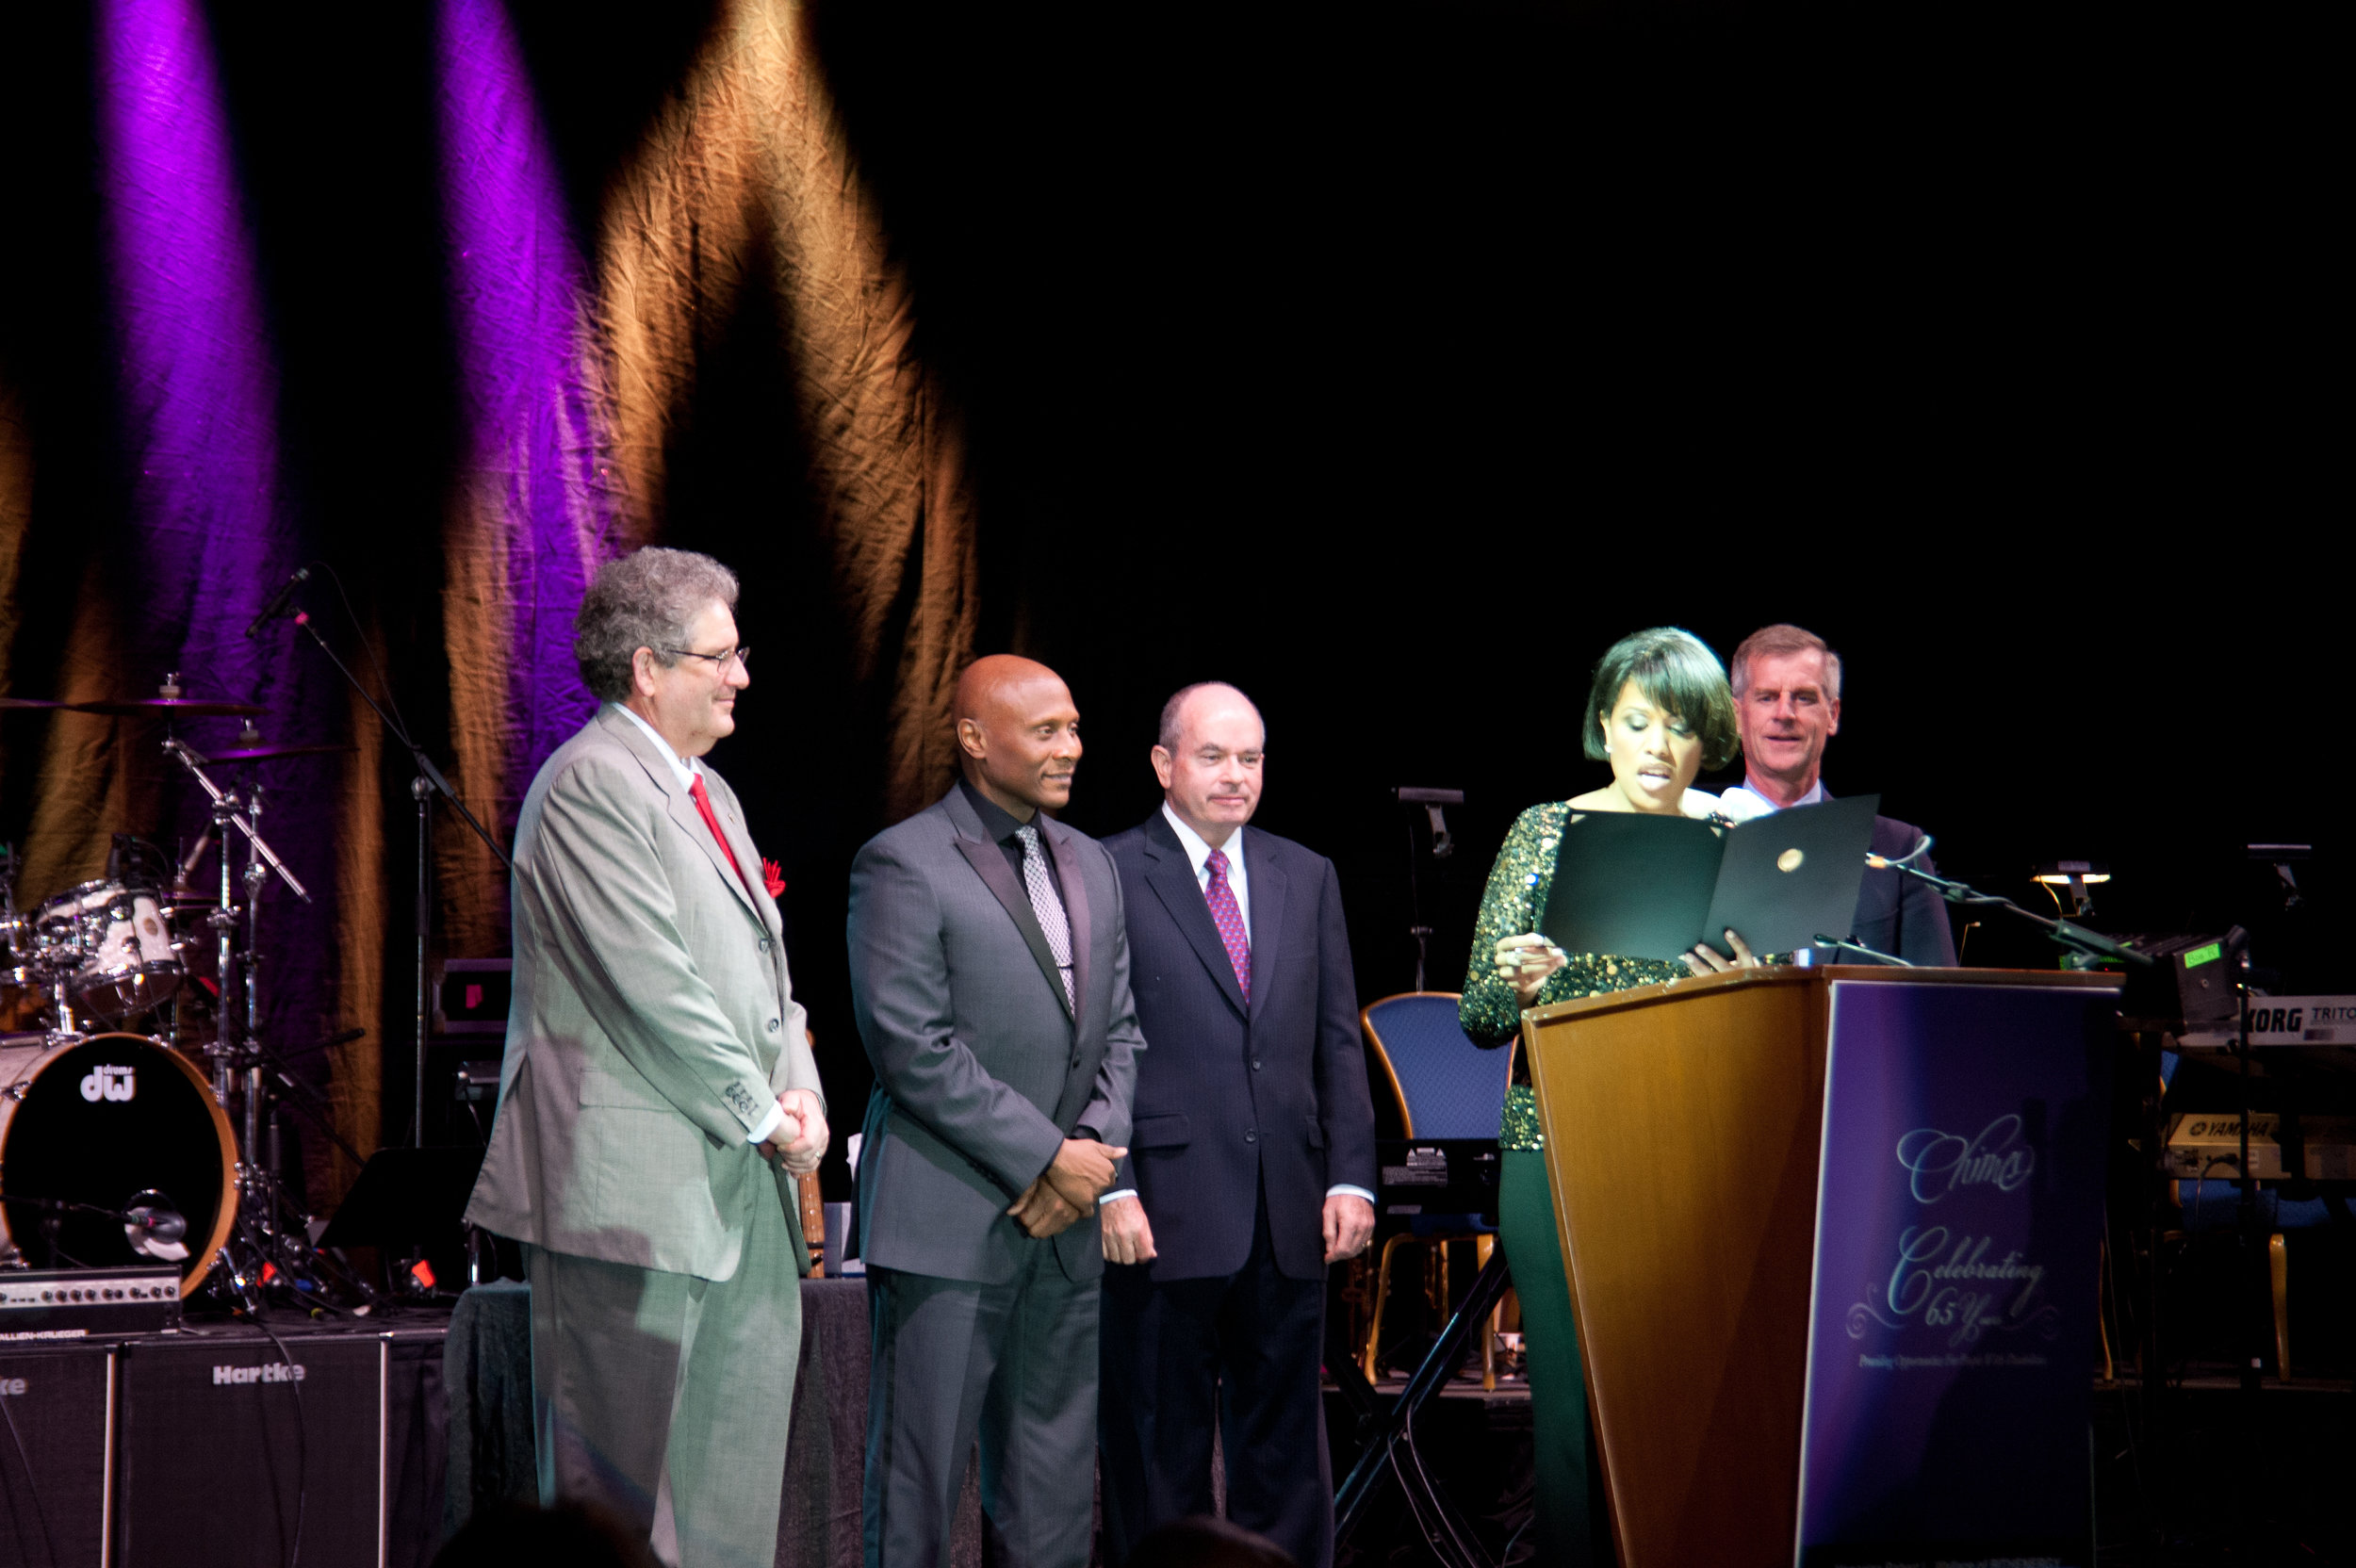 Receiving the Business Person of the Year Award from Chimes International. Robert Wallace with Baltimore Mayor Rawlings-Blake.